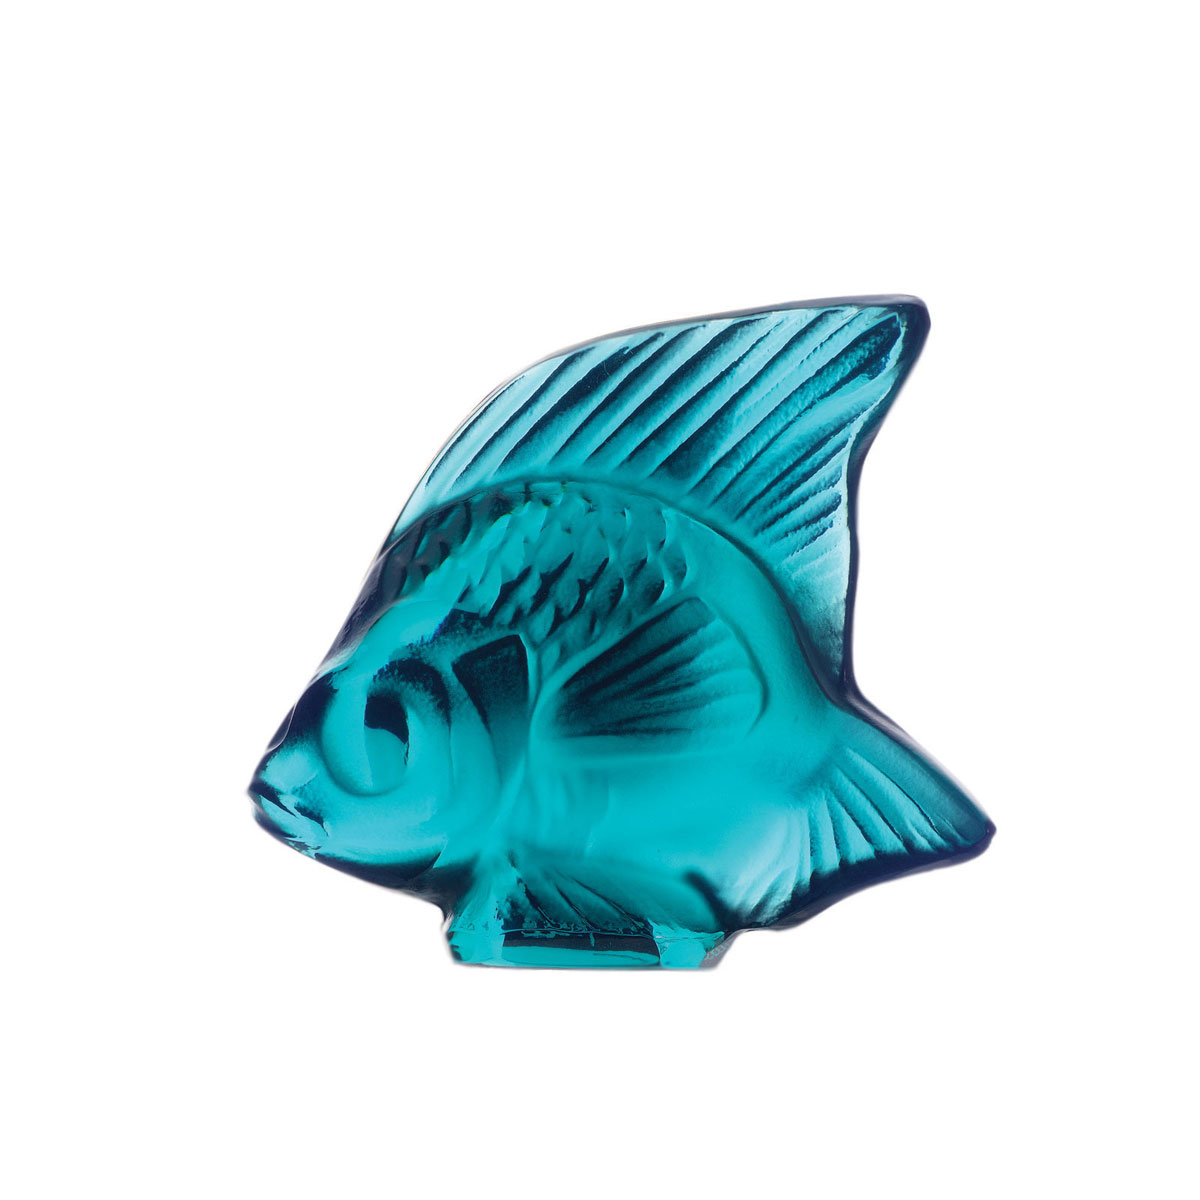 Lalique Crystal, Turquoise Fish Sculpture